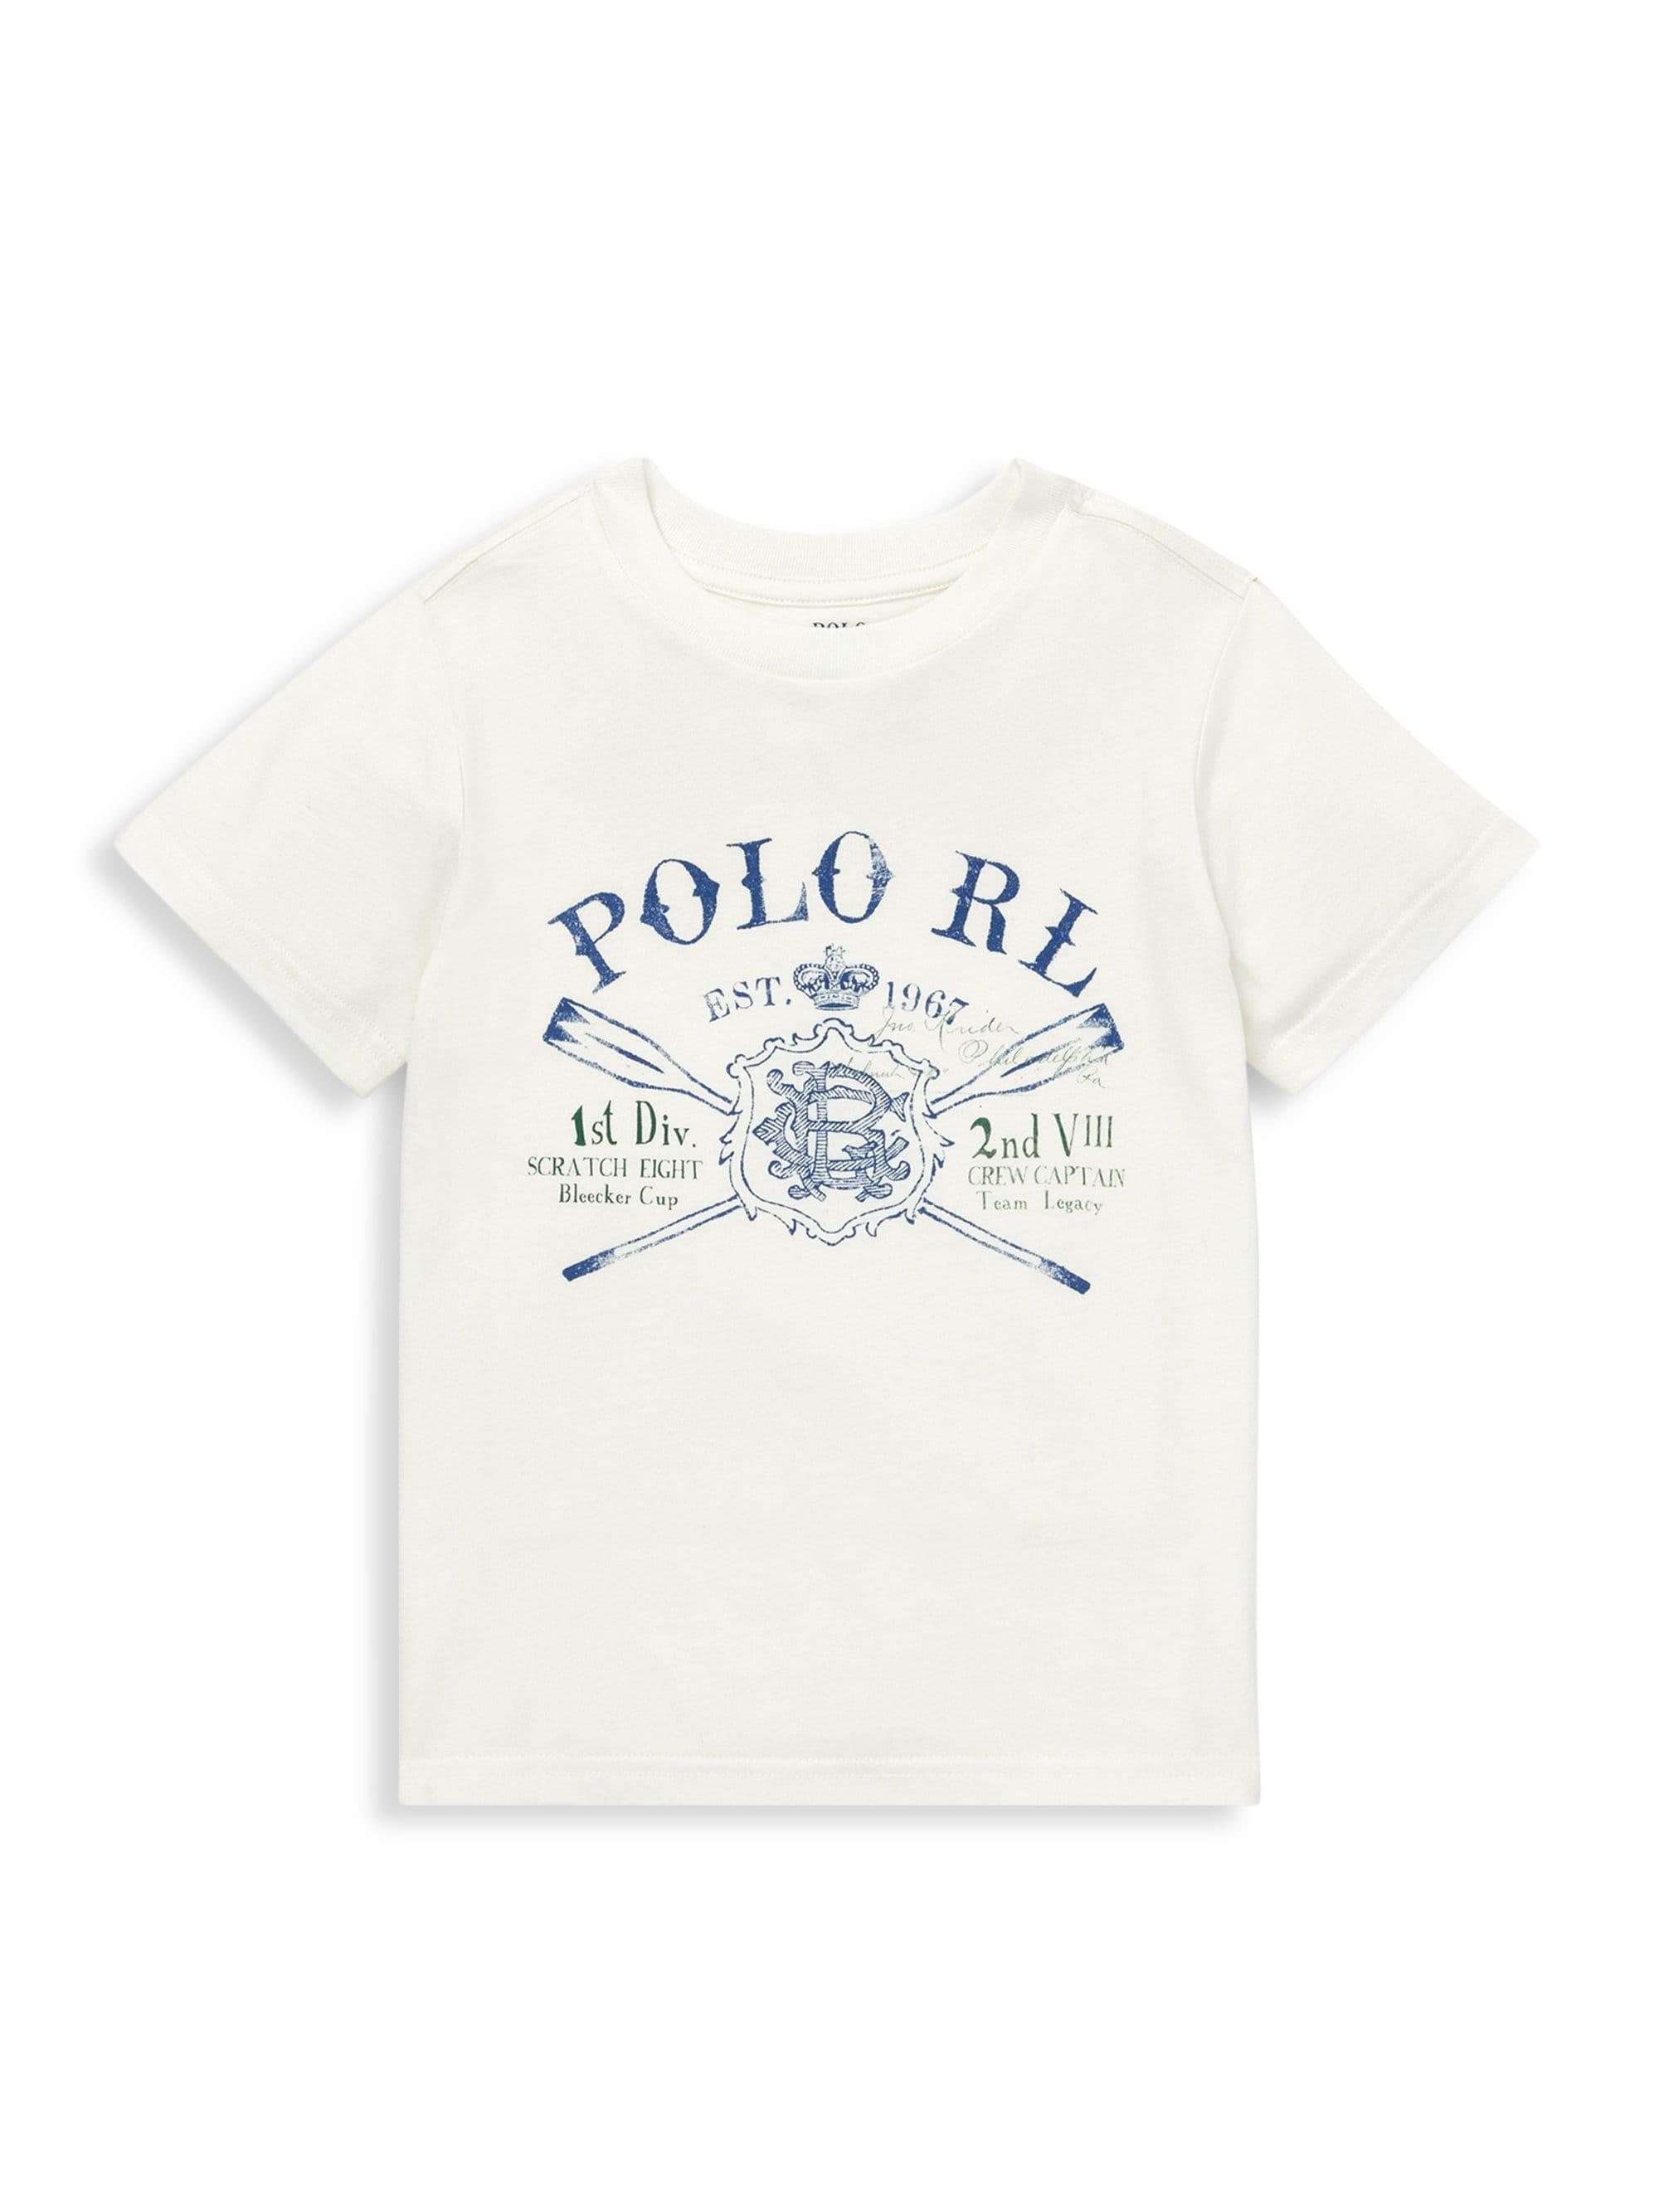 54c21e7bd Lyst - Ralph Lauren Little Boy s Graphic Cotton Jersey Tee in White ...